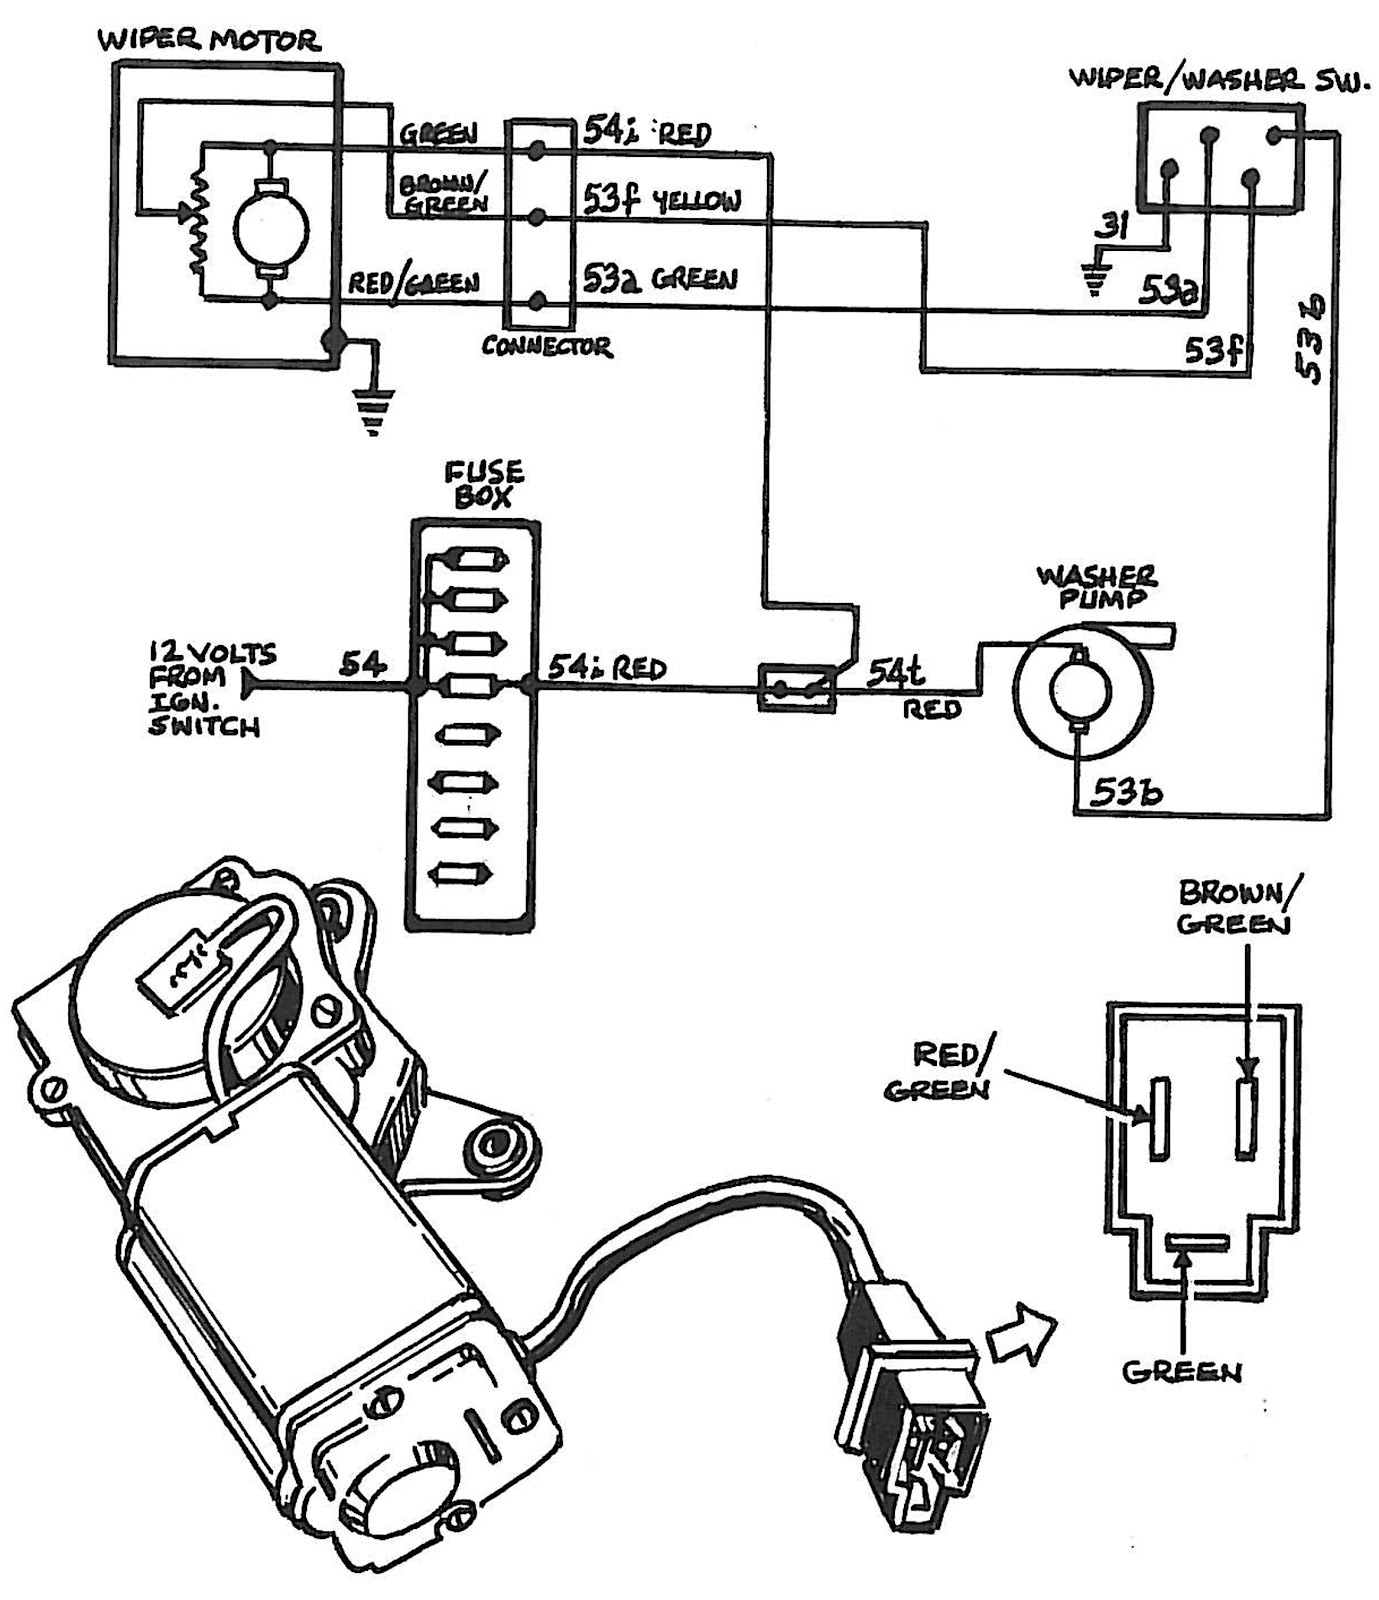 Showthread together with 1977 Corvette Starter Wiring Diagram likewise 1980 Chevy Truck Fuse Box together with 1965 Mustang Wiring Diagrams furthermore P 0900c152800836b9. on 74 corvette wiring diagram